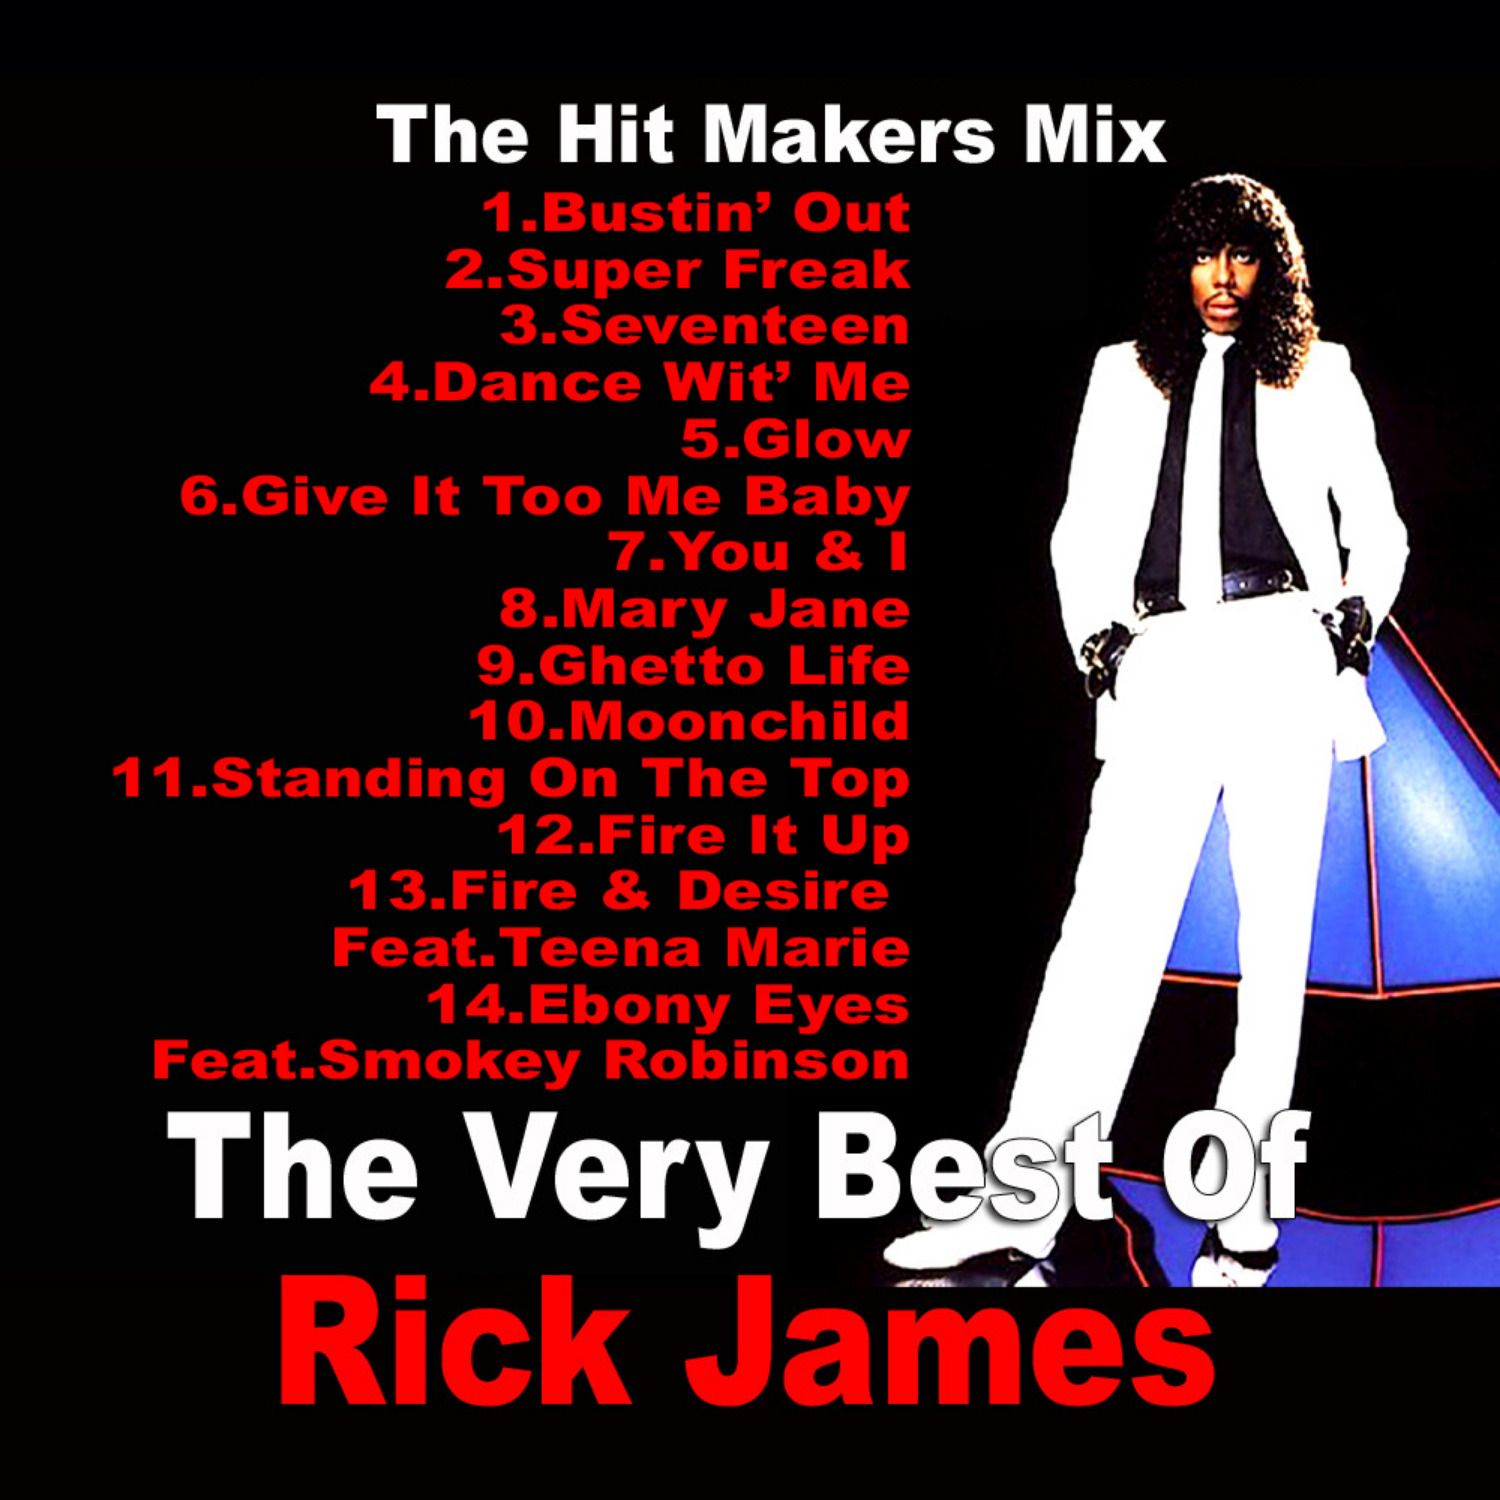 Best Of Rick James Tribute Mp3 Download Rick James Mixtape Fire And Desire